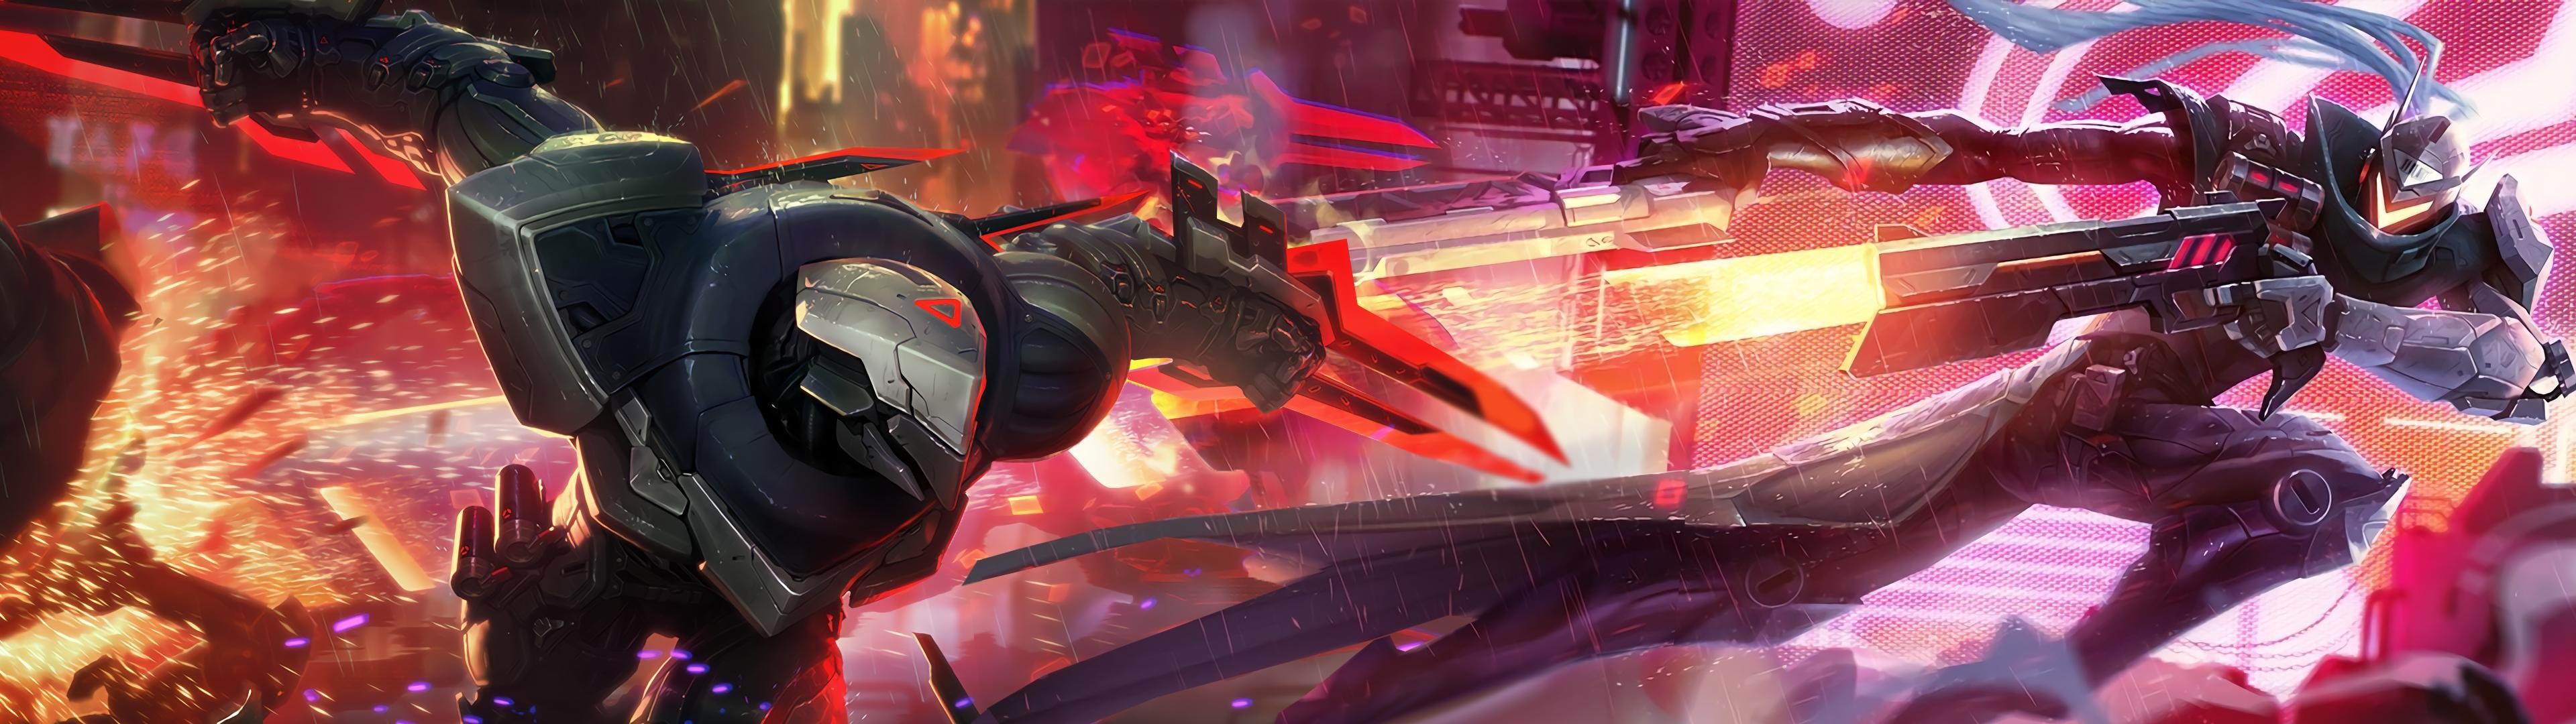 3840x1080 League Of Legends Project Zed Wallpapers Desktop Background